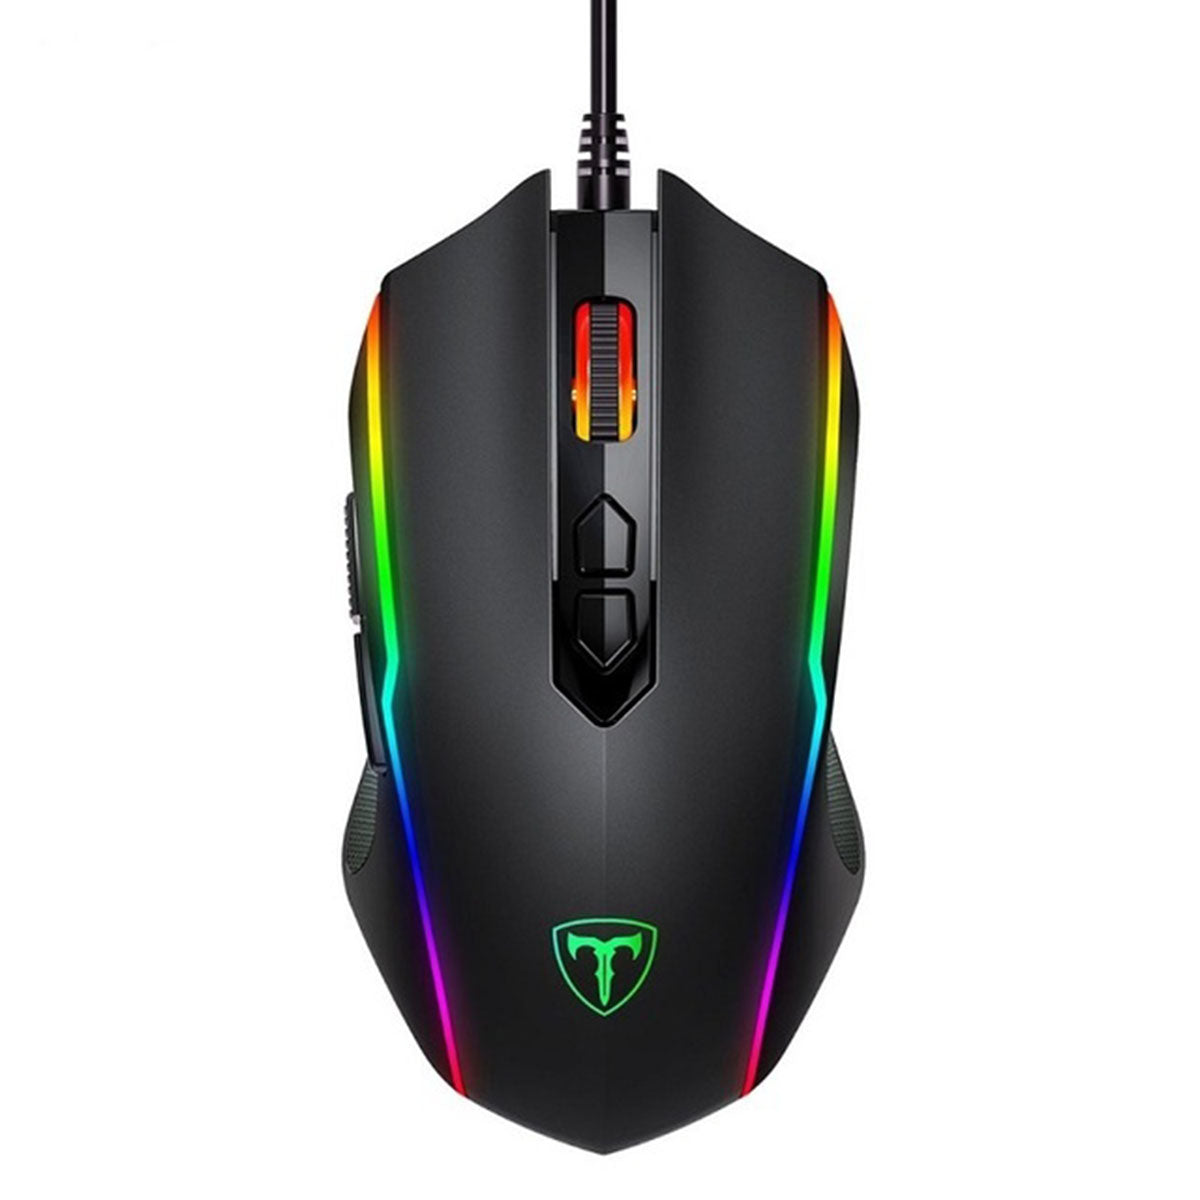 Ergonomic Programmable RGB Gaming Mouse